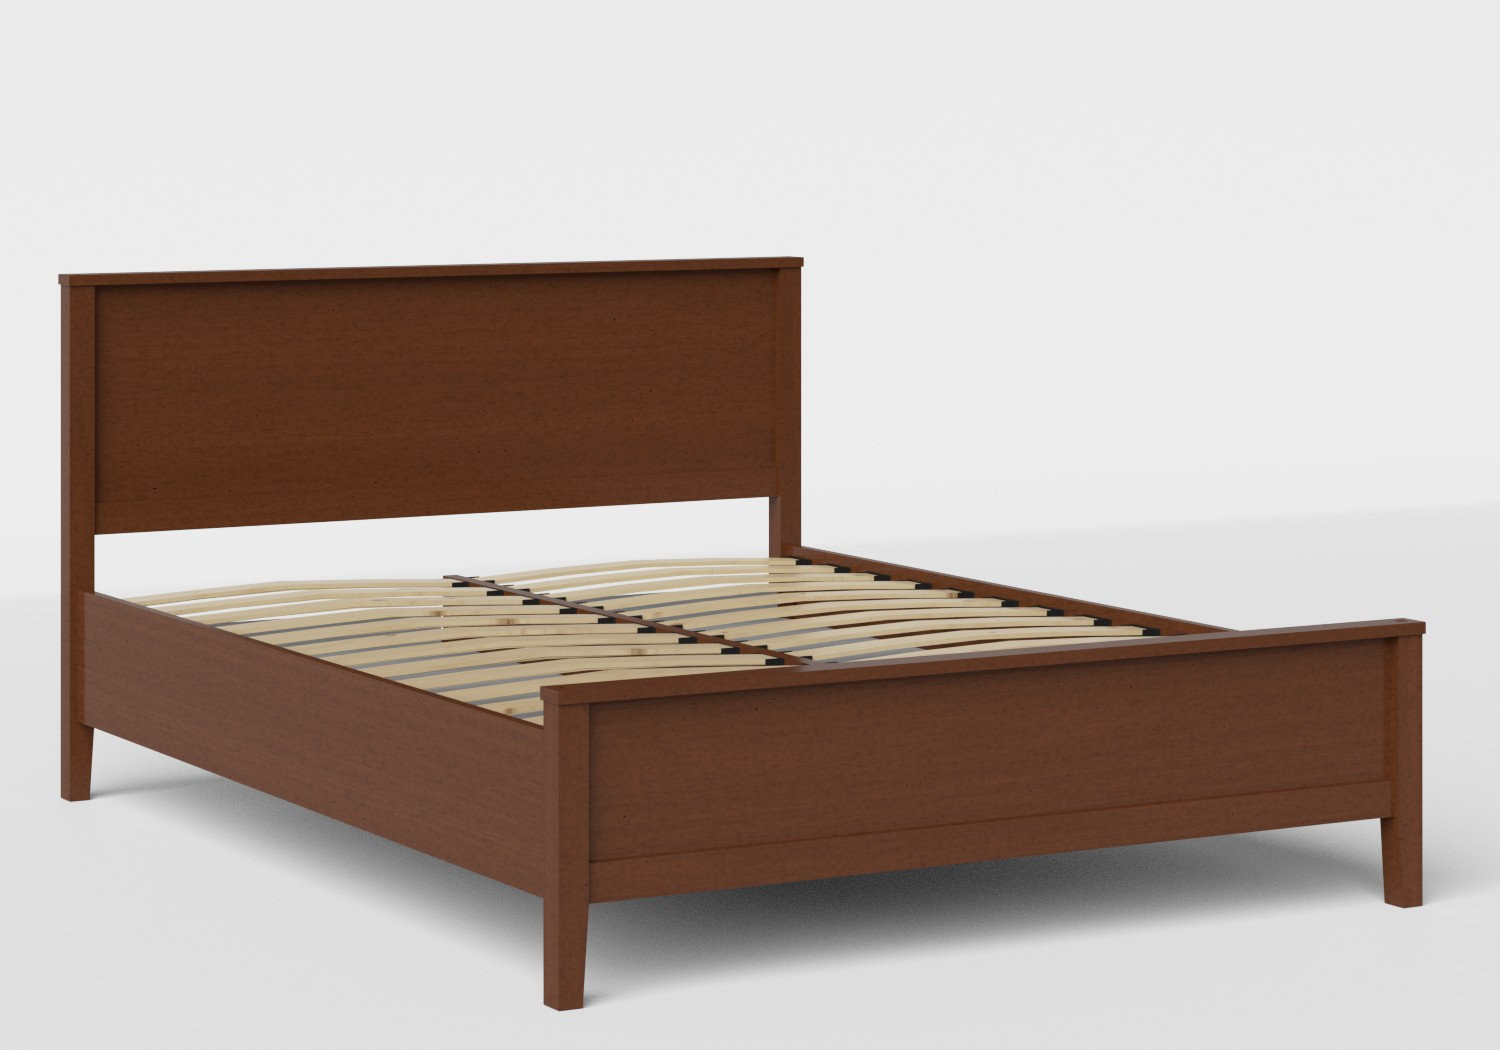 Ramsay Wood Bed in Dark Cherry shown with slatted frame